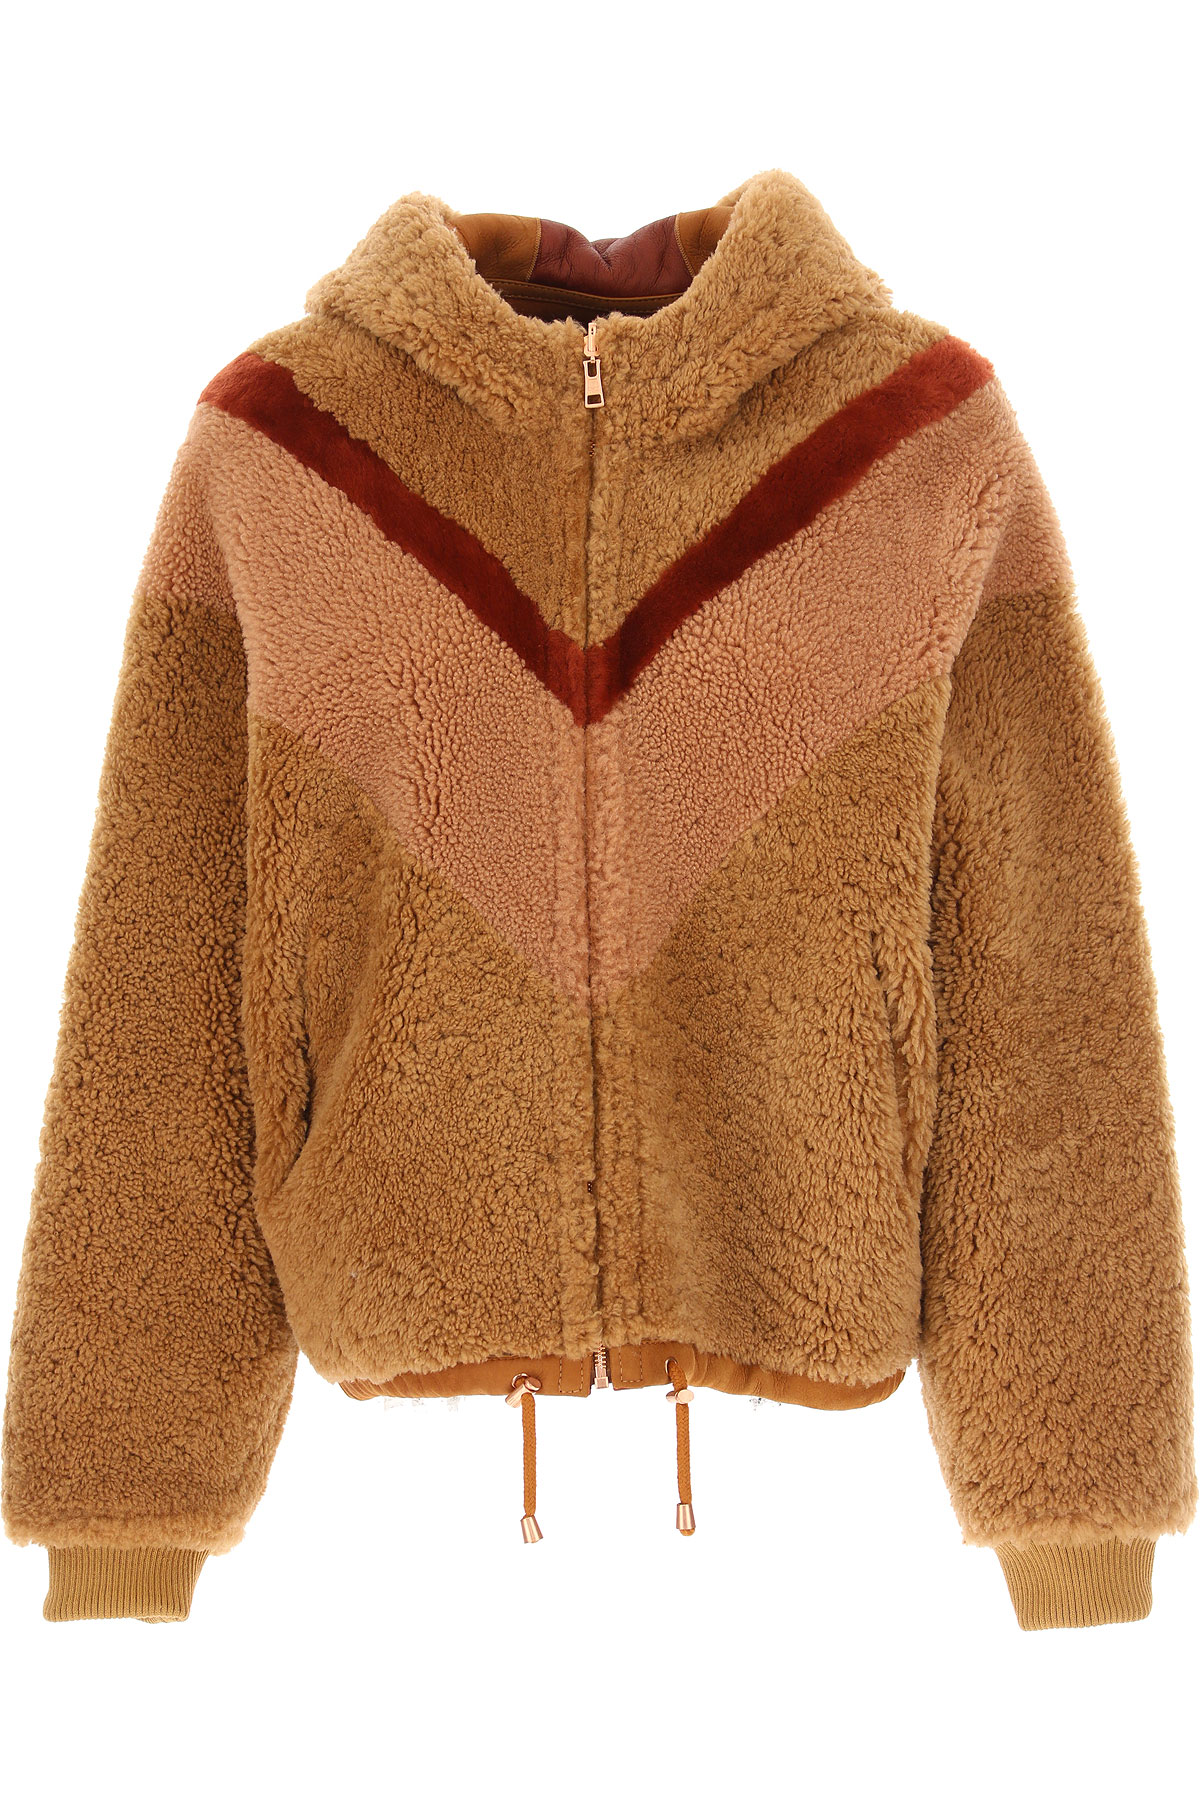 See By Chloe Jacket for Women On Sale, Beige, Leather, 2019, 4 6